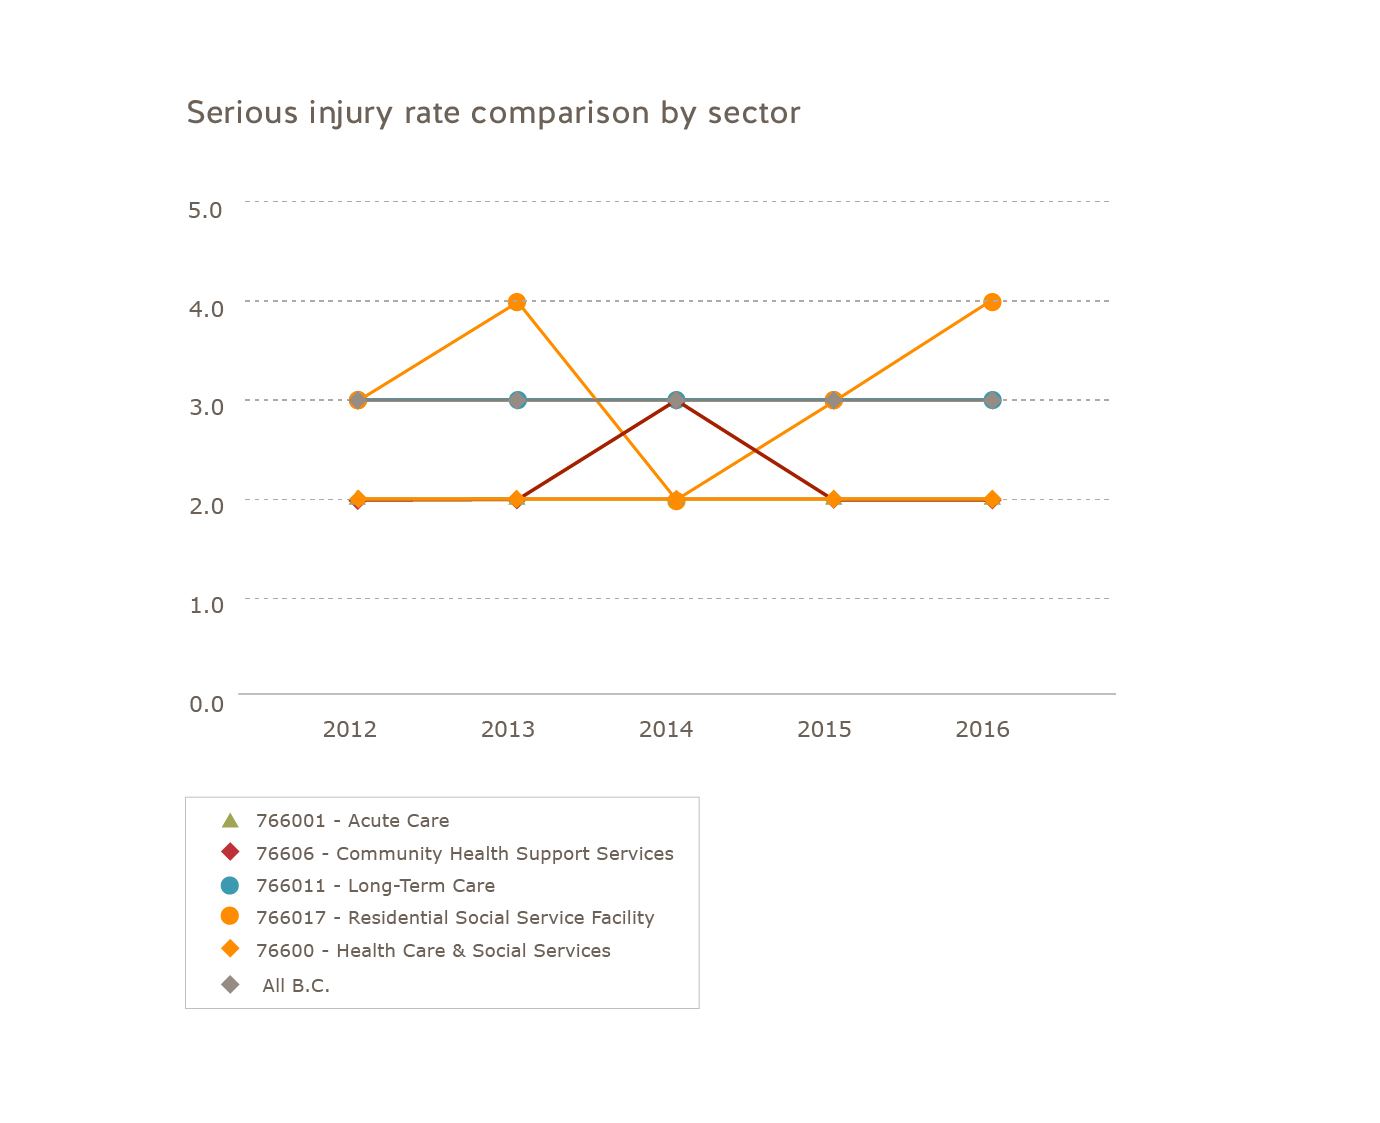 Health care industry serious injury rate comparison by sector (2012 to 2016)